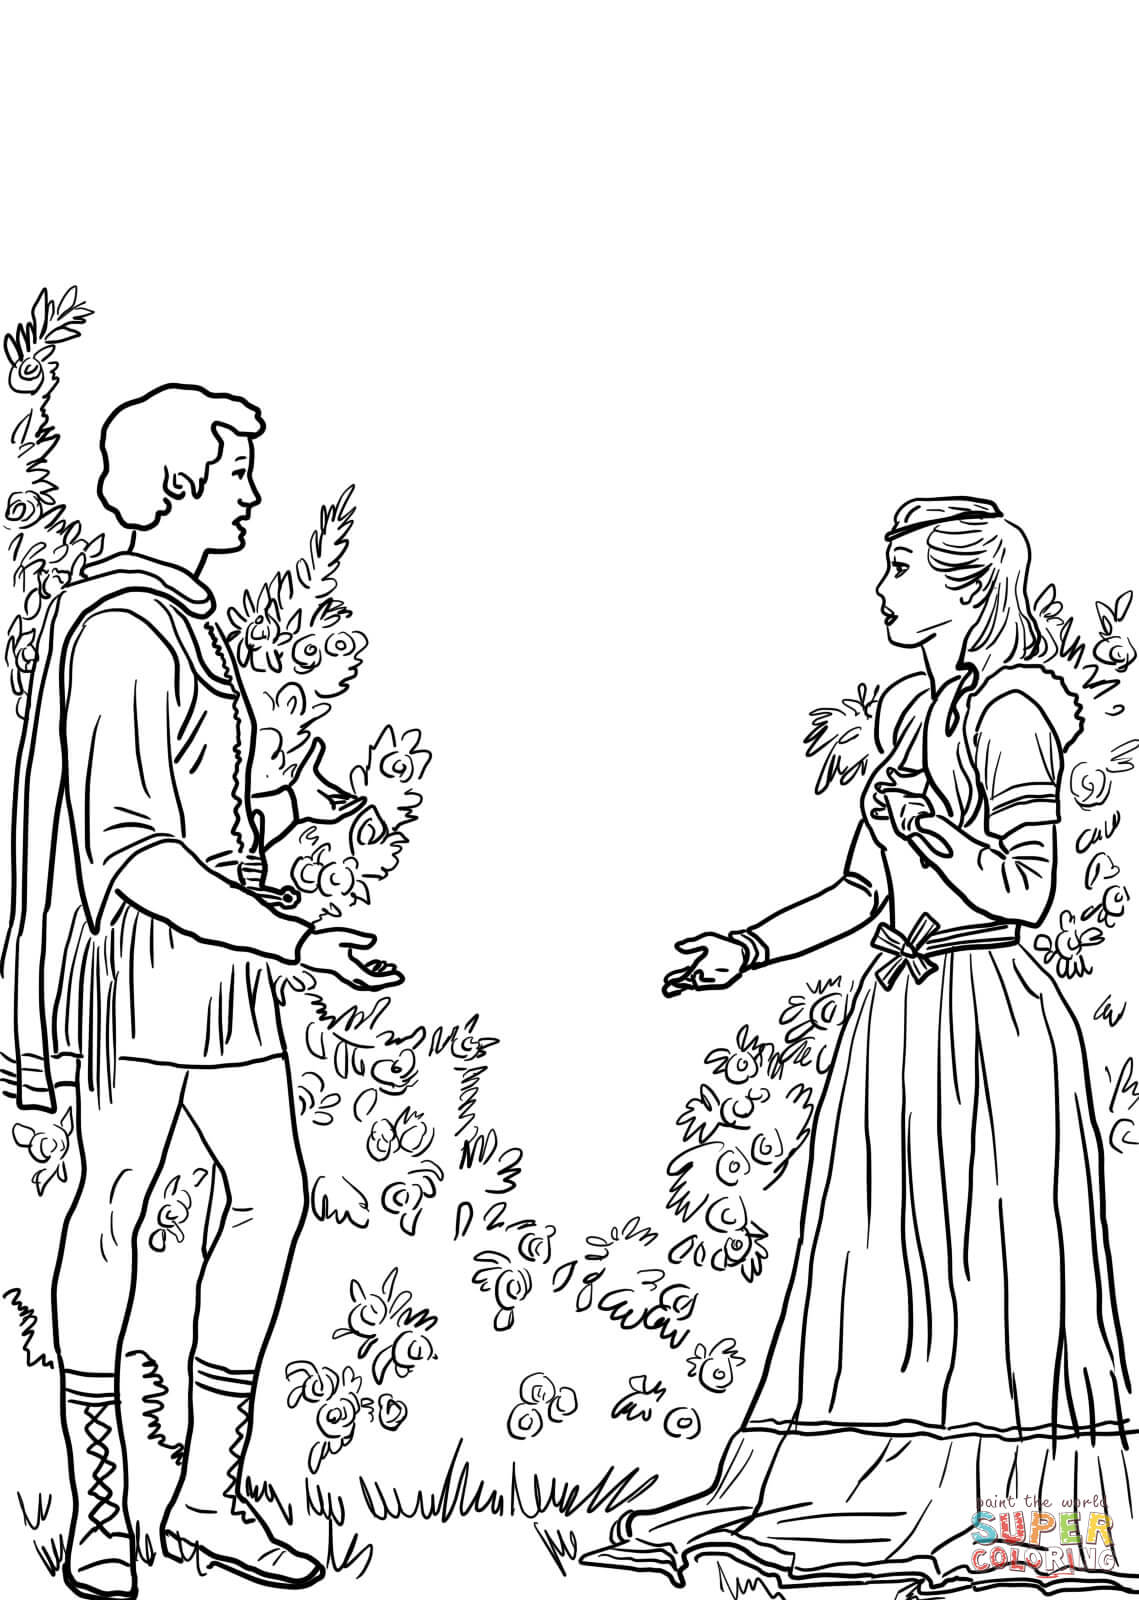 Romeo und julia clipart picture library download Romeo and Juliet in the Garden coloring page | Free Printable ... picture library download